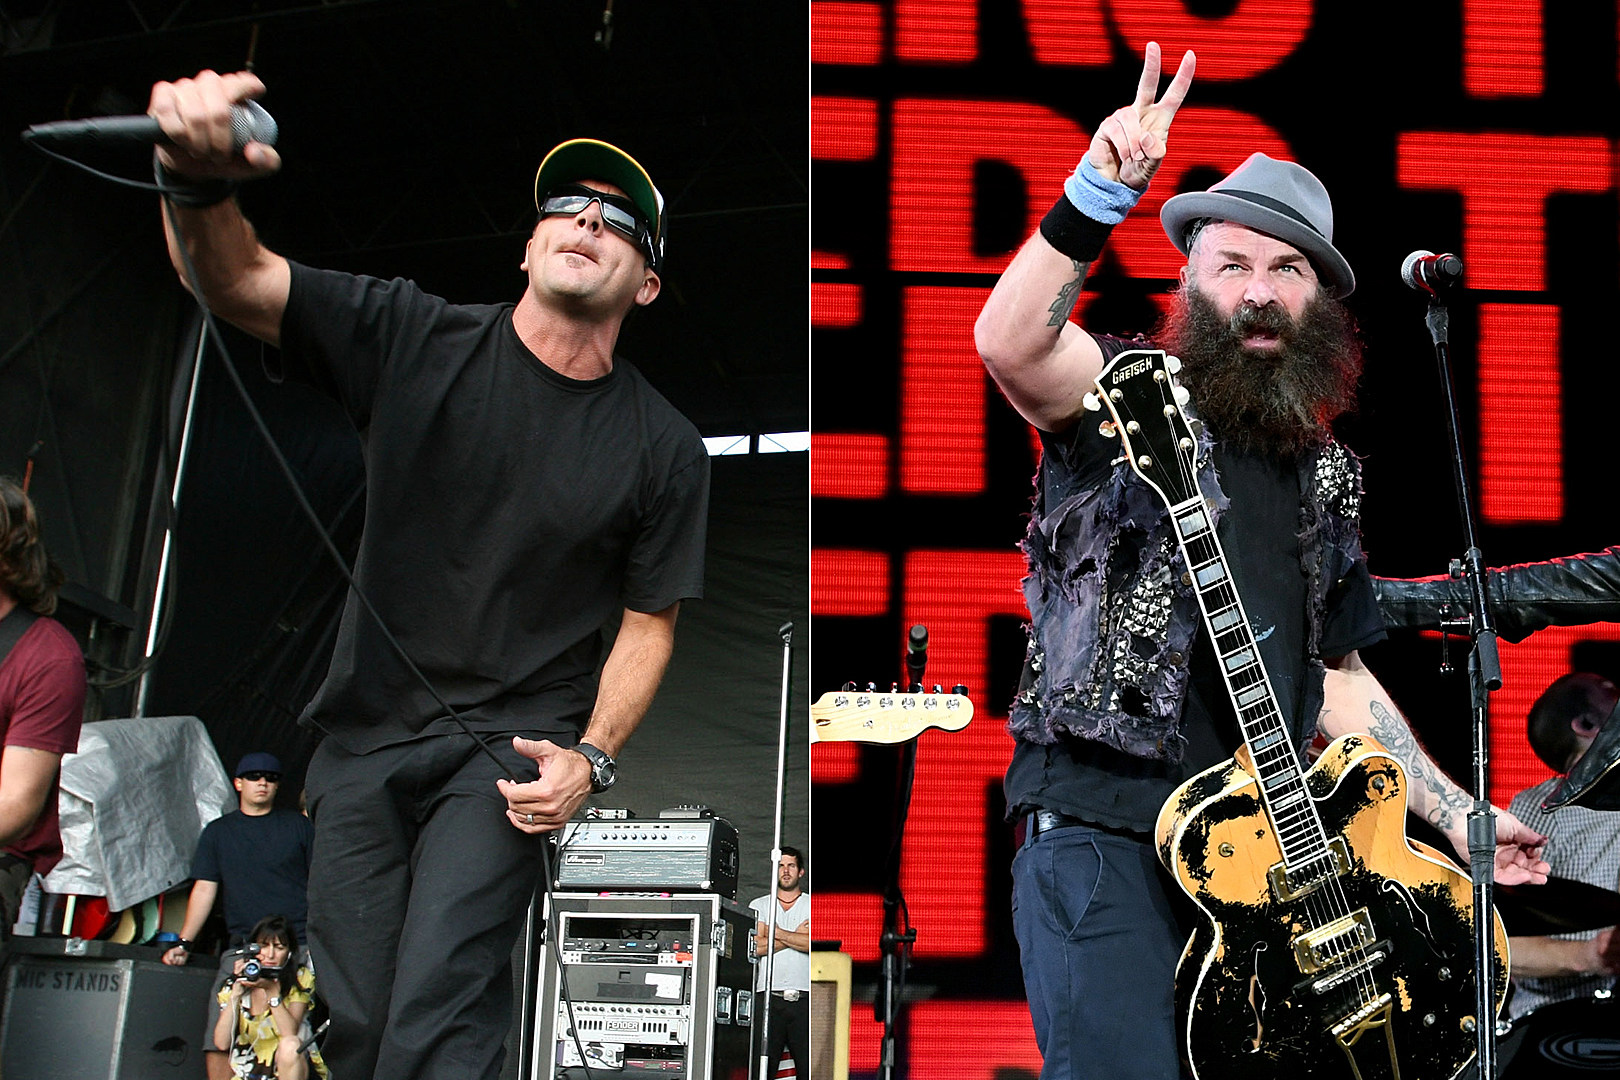 Pennywise + Rancid Lead Inaugural Gnarlytown Action Sports + Punk Festival